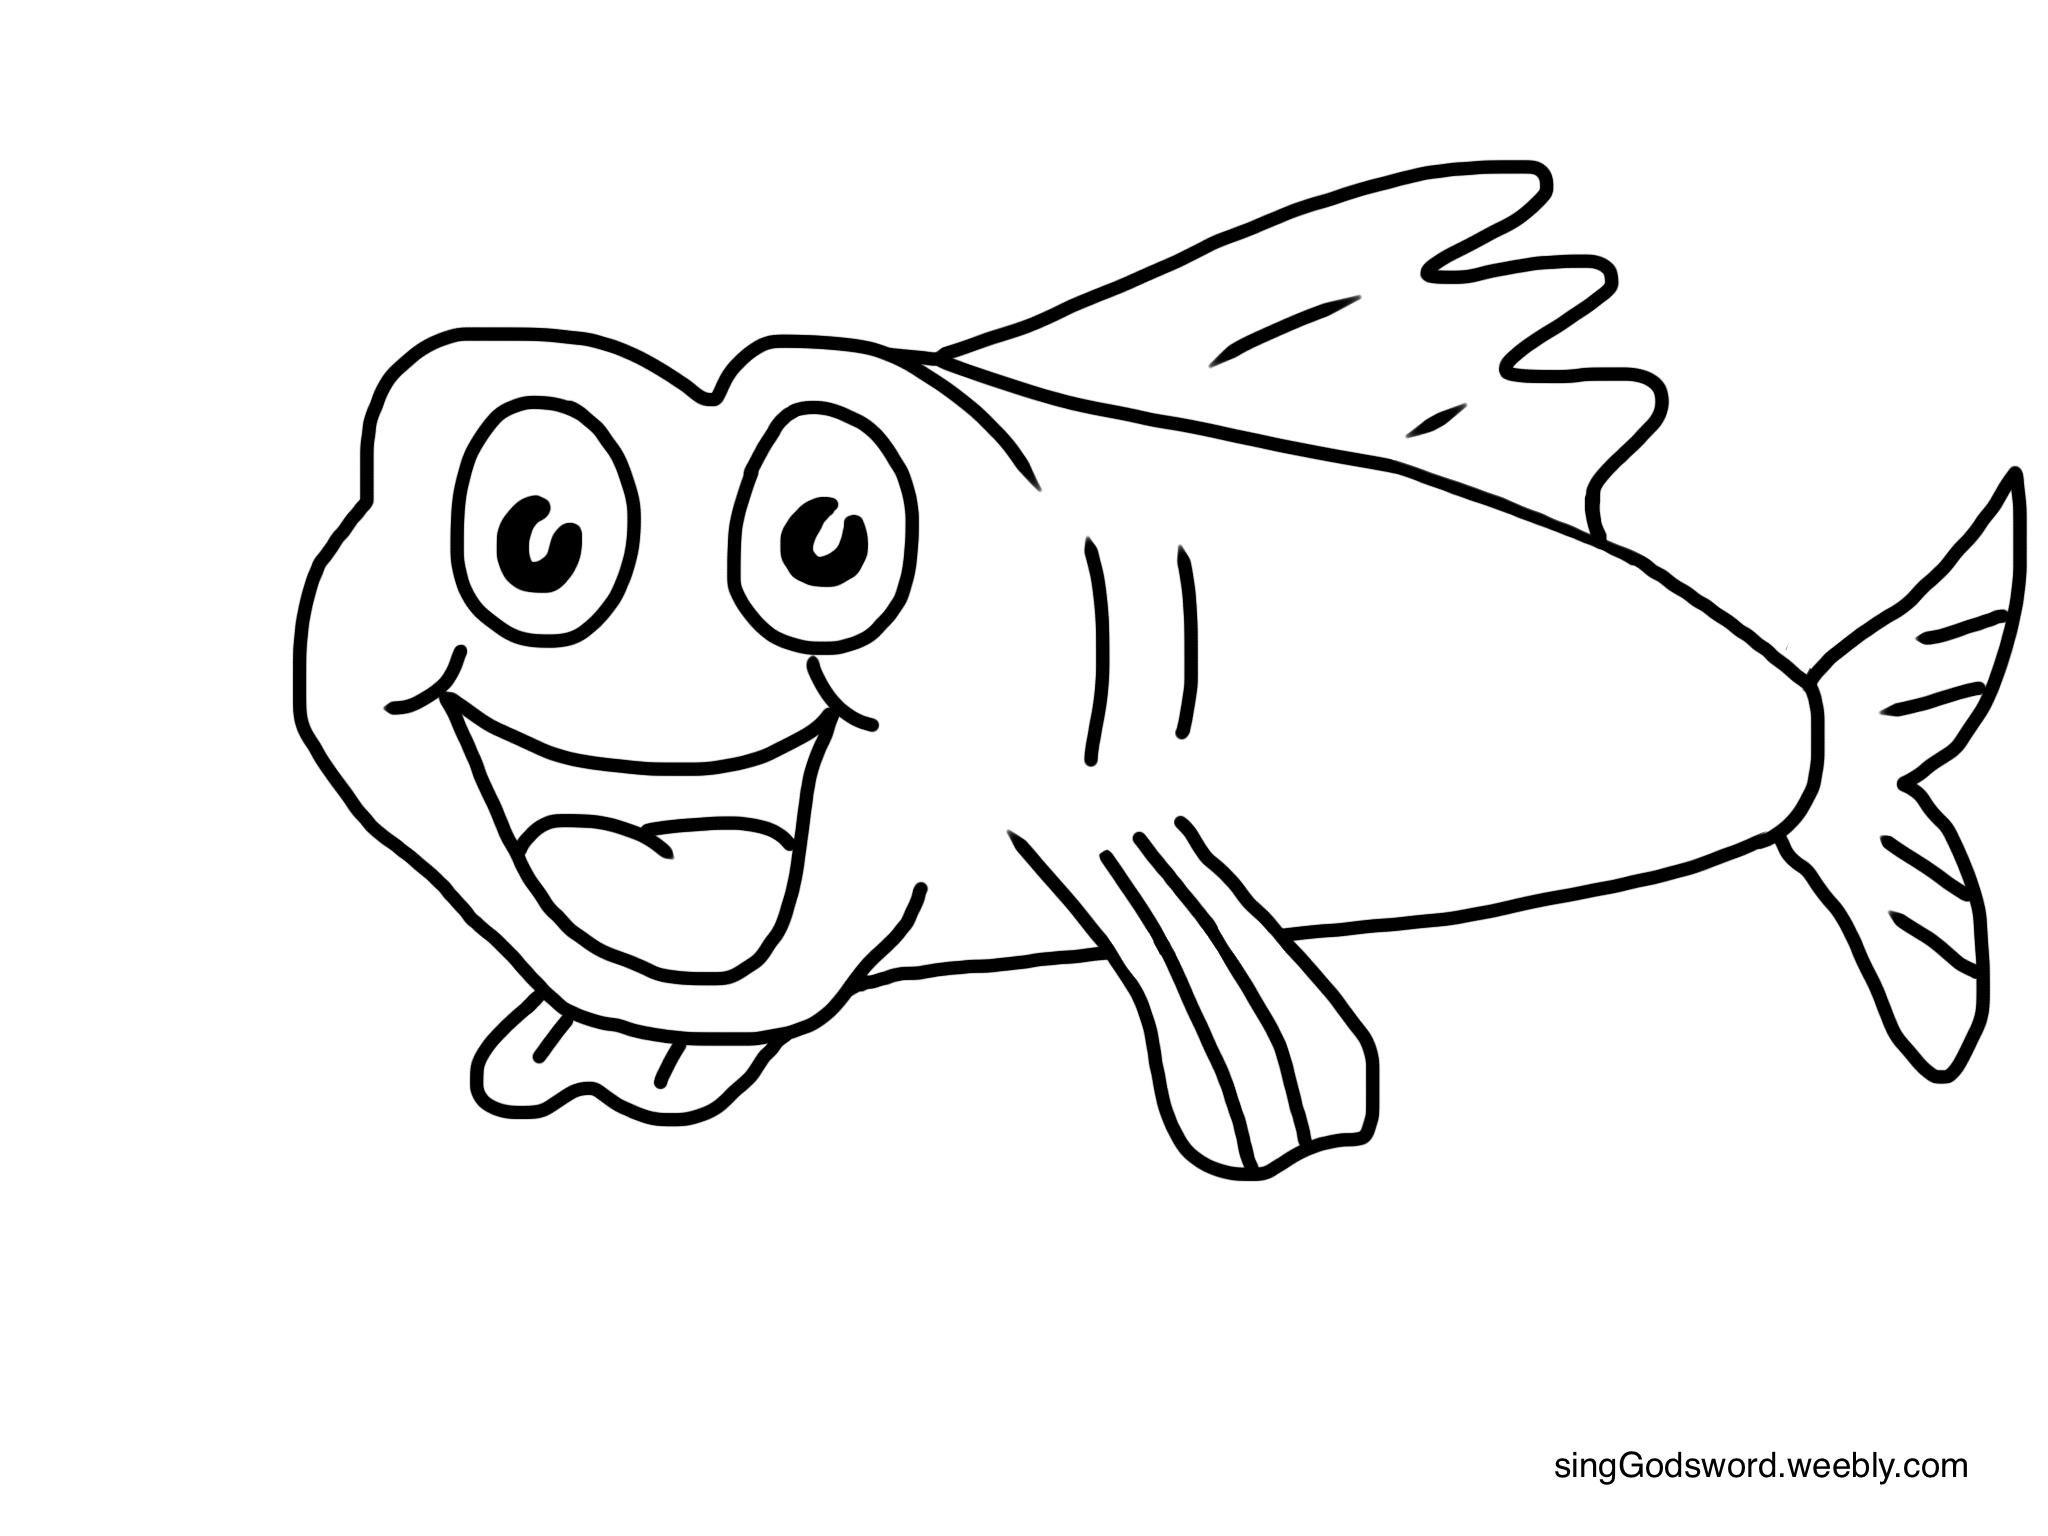 A Fish Coin In Its Mouth With A Sheet Coloring Pages